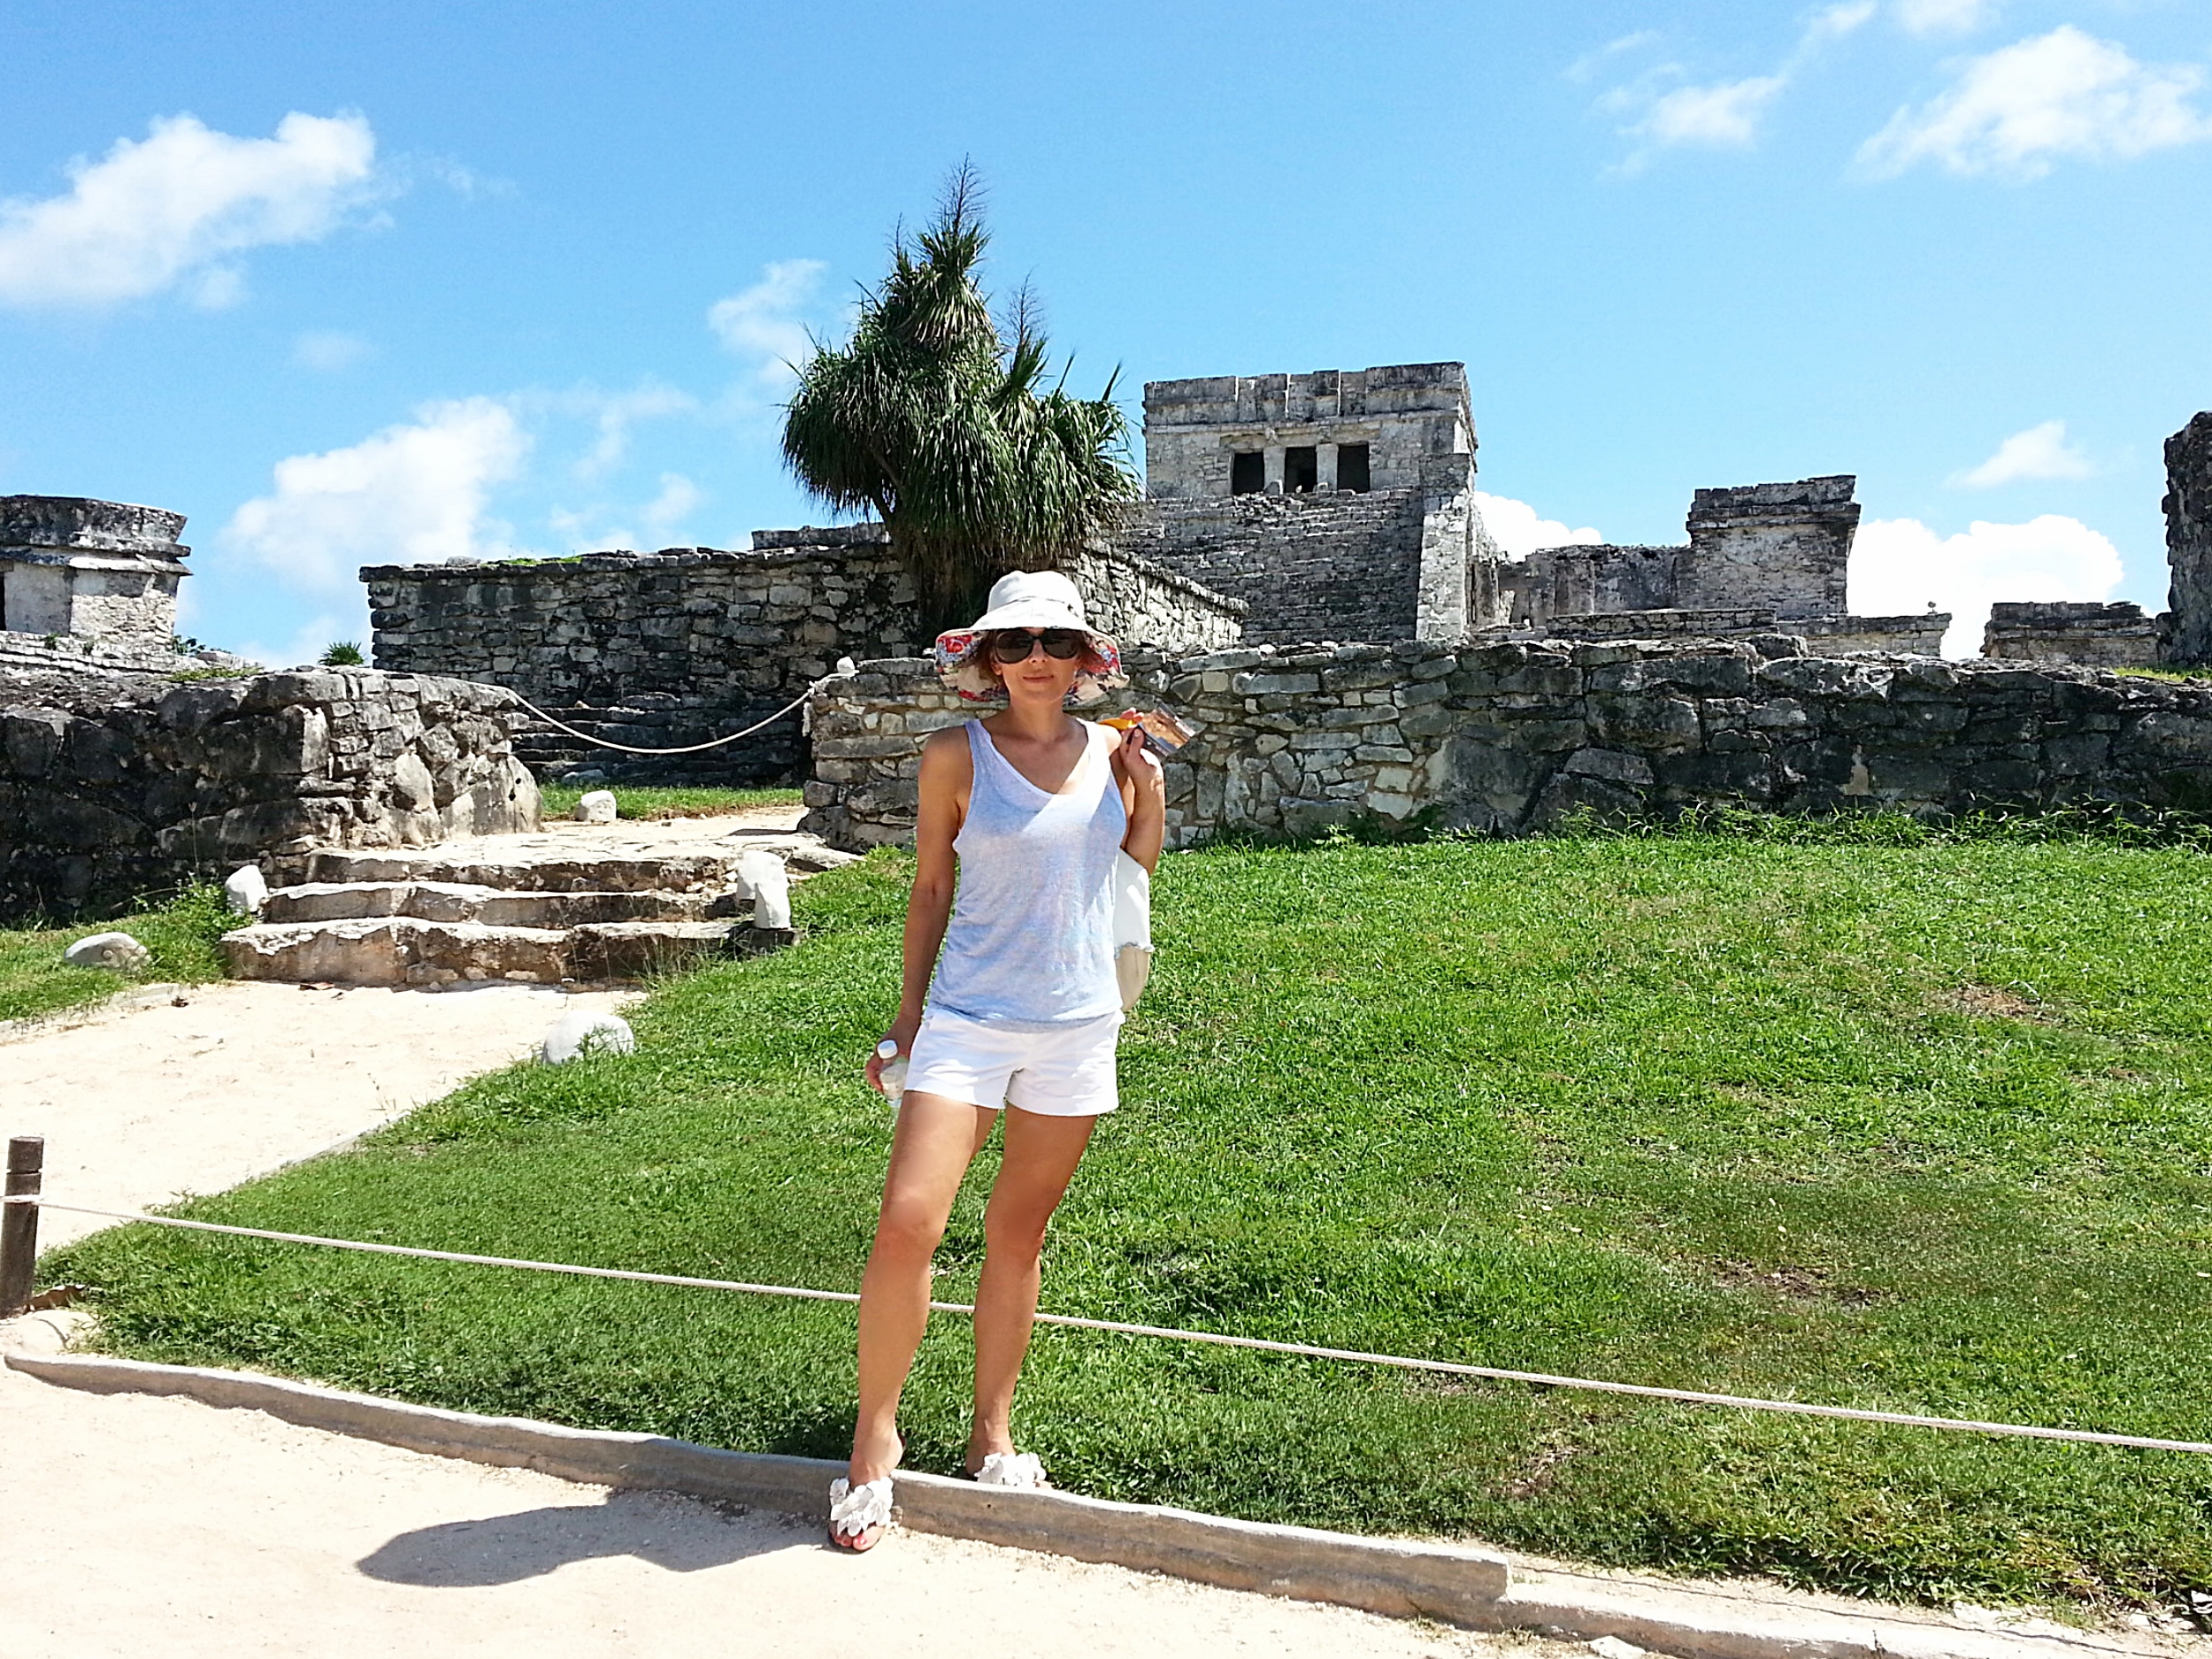 tati - Destination: Tulum, MexicoTime: 5 daysOlga created a schedule that was flexible and allowed me to have days where I could choose among spa, yoga, meditation, Temazcal cleansing rituals (that was a first for me and I loved it!) and other Mayan mystic journeys.